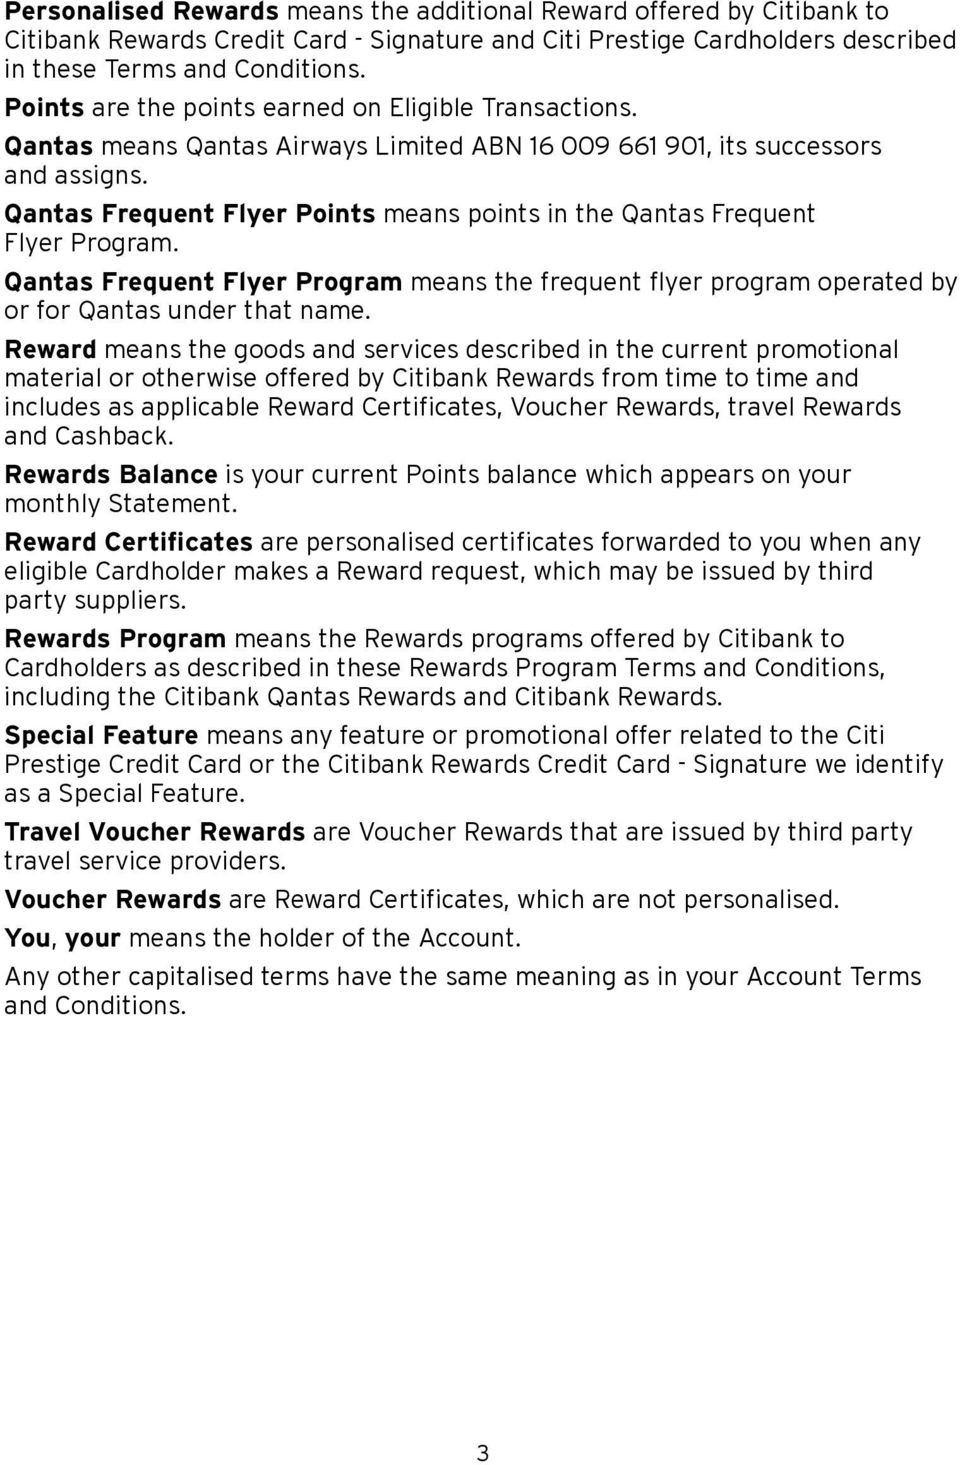 Qantas Frequent Flyer Points means points in the Qantas Frequent Flyer Program. Qantas Frequent Flyer Program means the frequent flyer program operated by or for Qantas under that name.